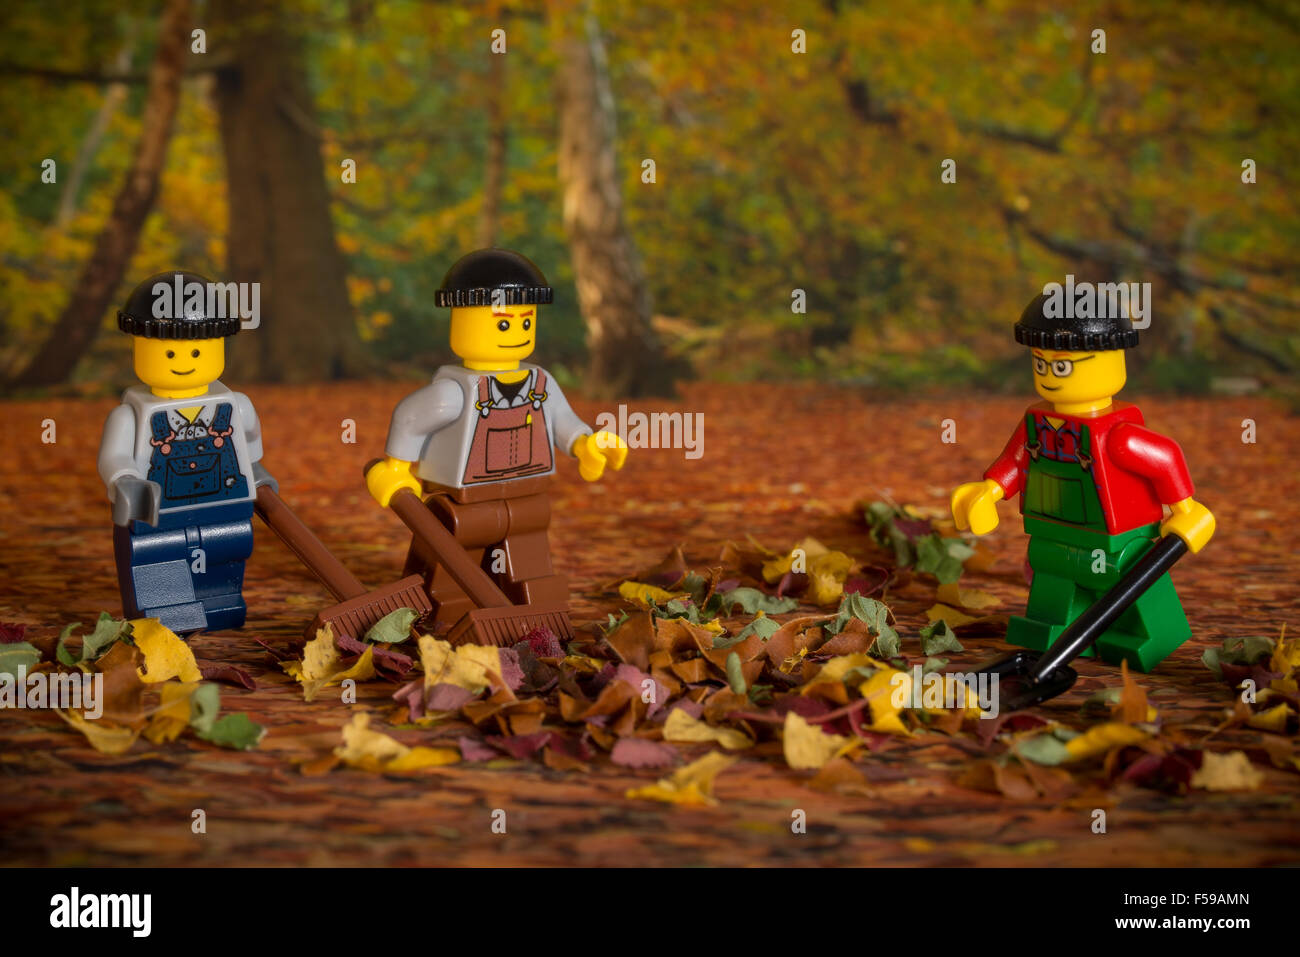 Lego men sweeping leaves - Stock Image